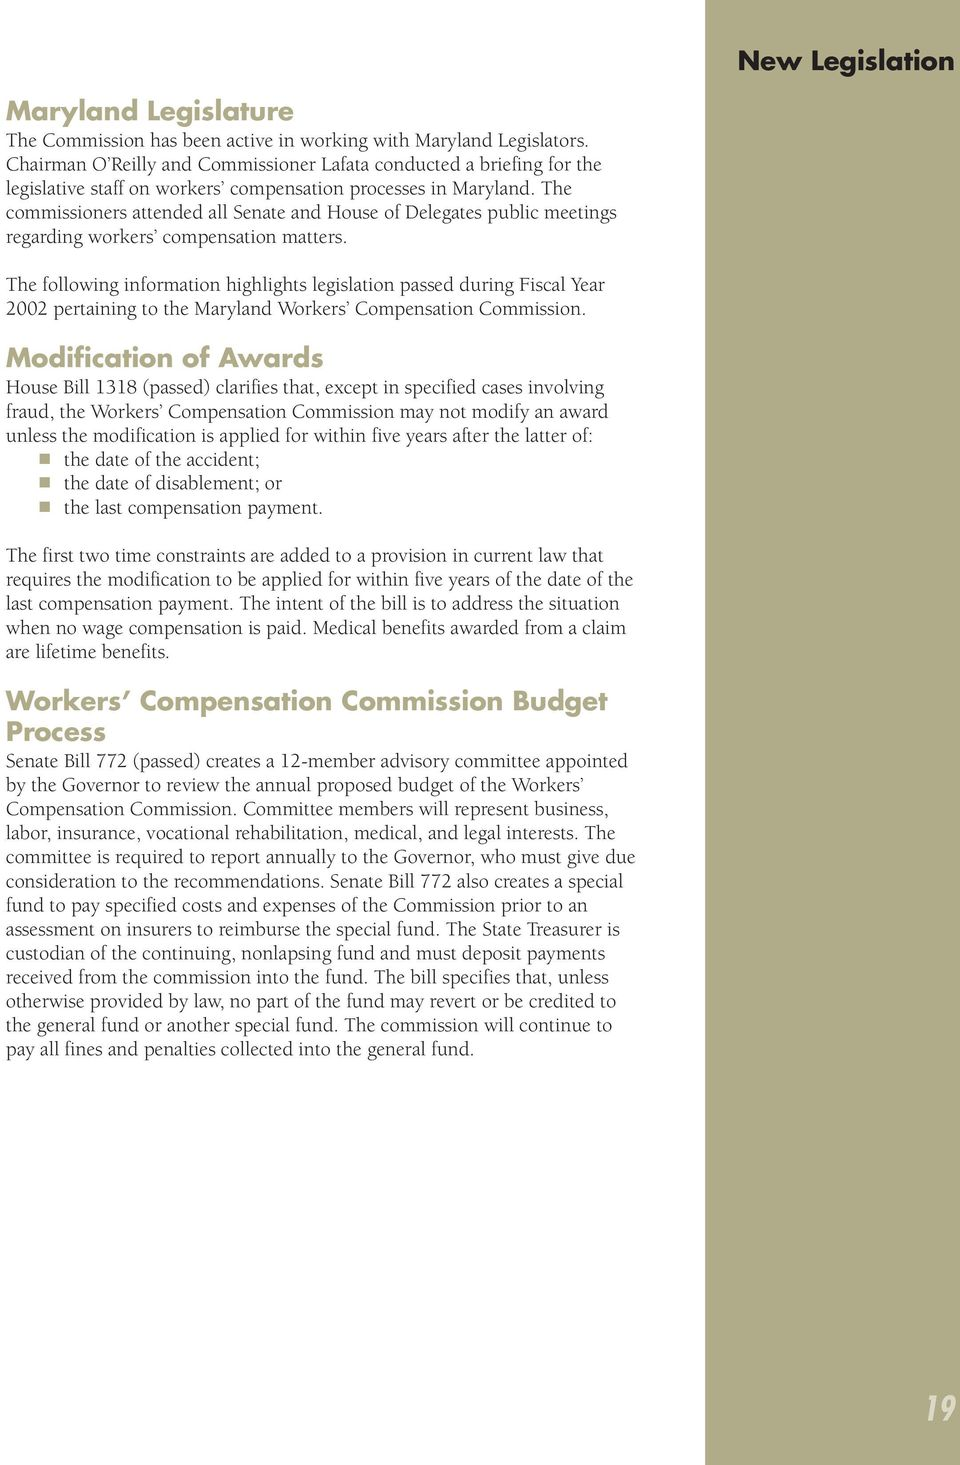 The commissioners attended all Senate and House of Delegates public meetings regarding workers compensation matters.